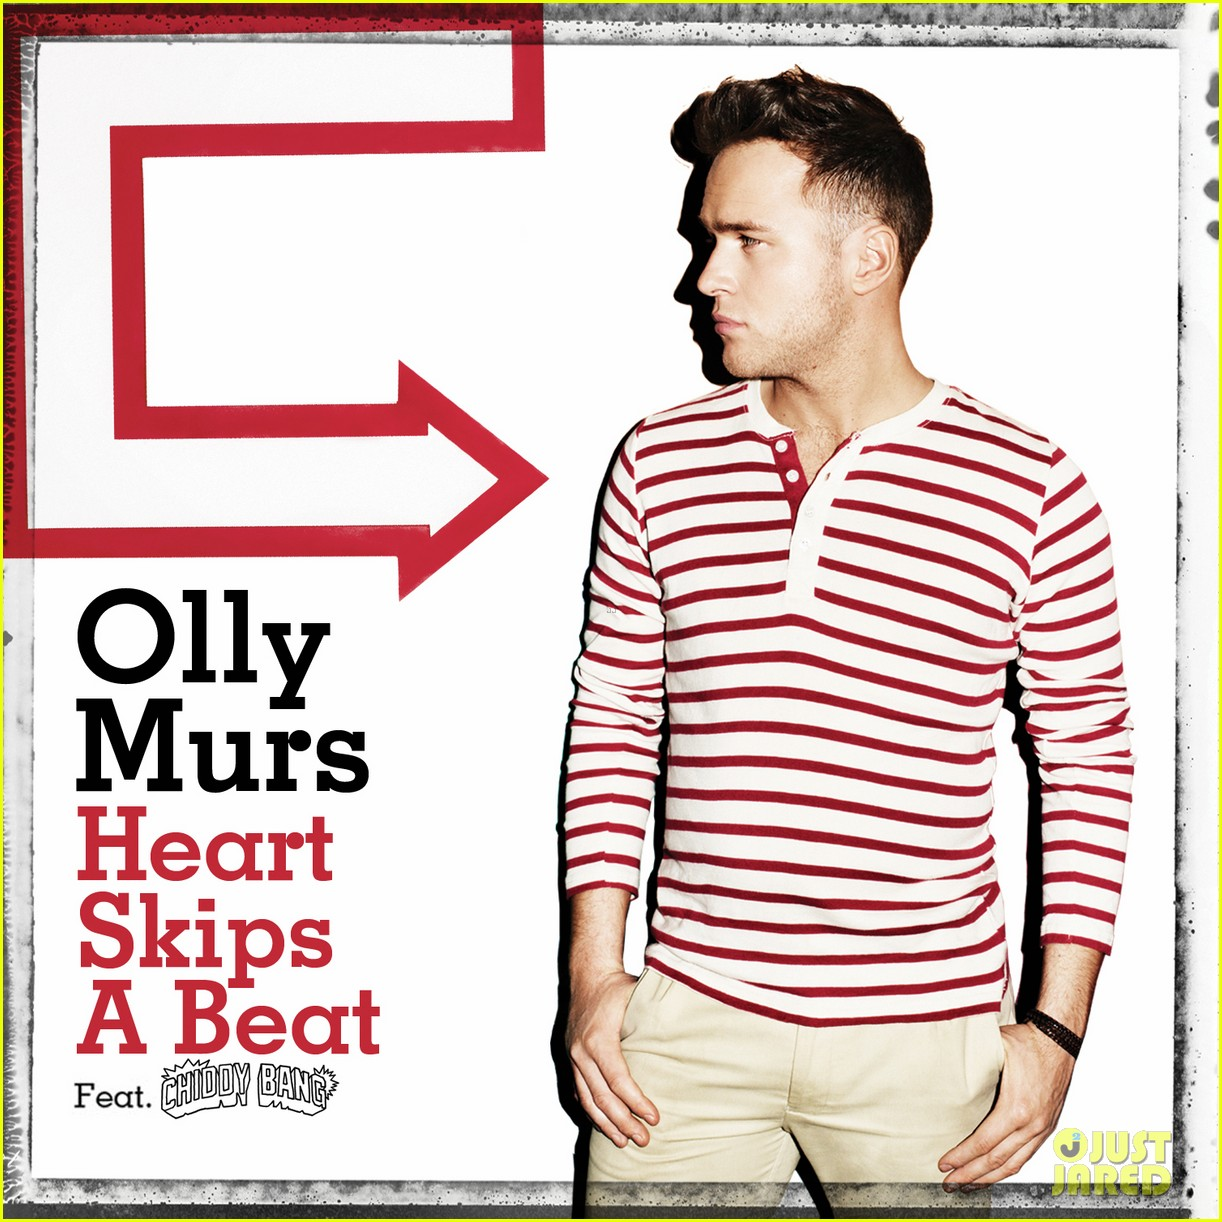 olly murs hearts skips a beat acoustic video exclusive 03